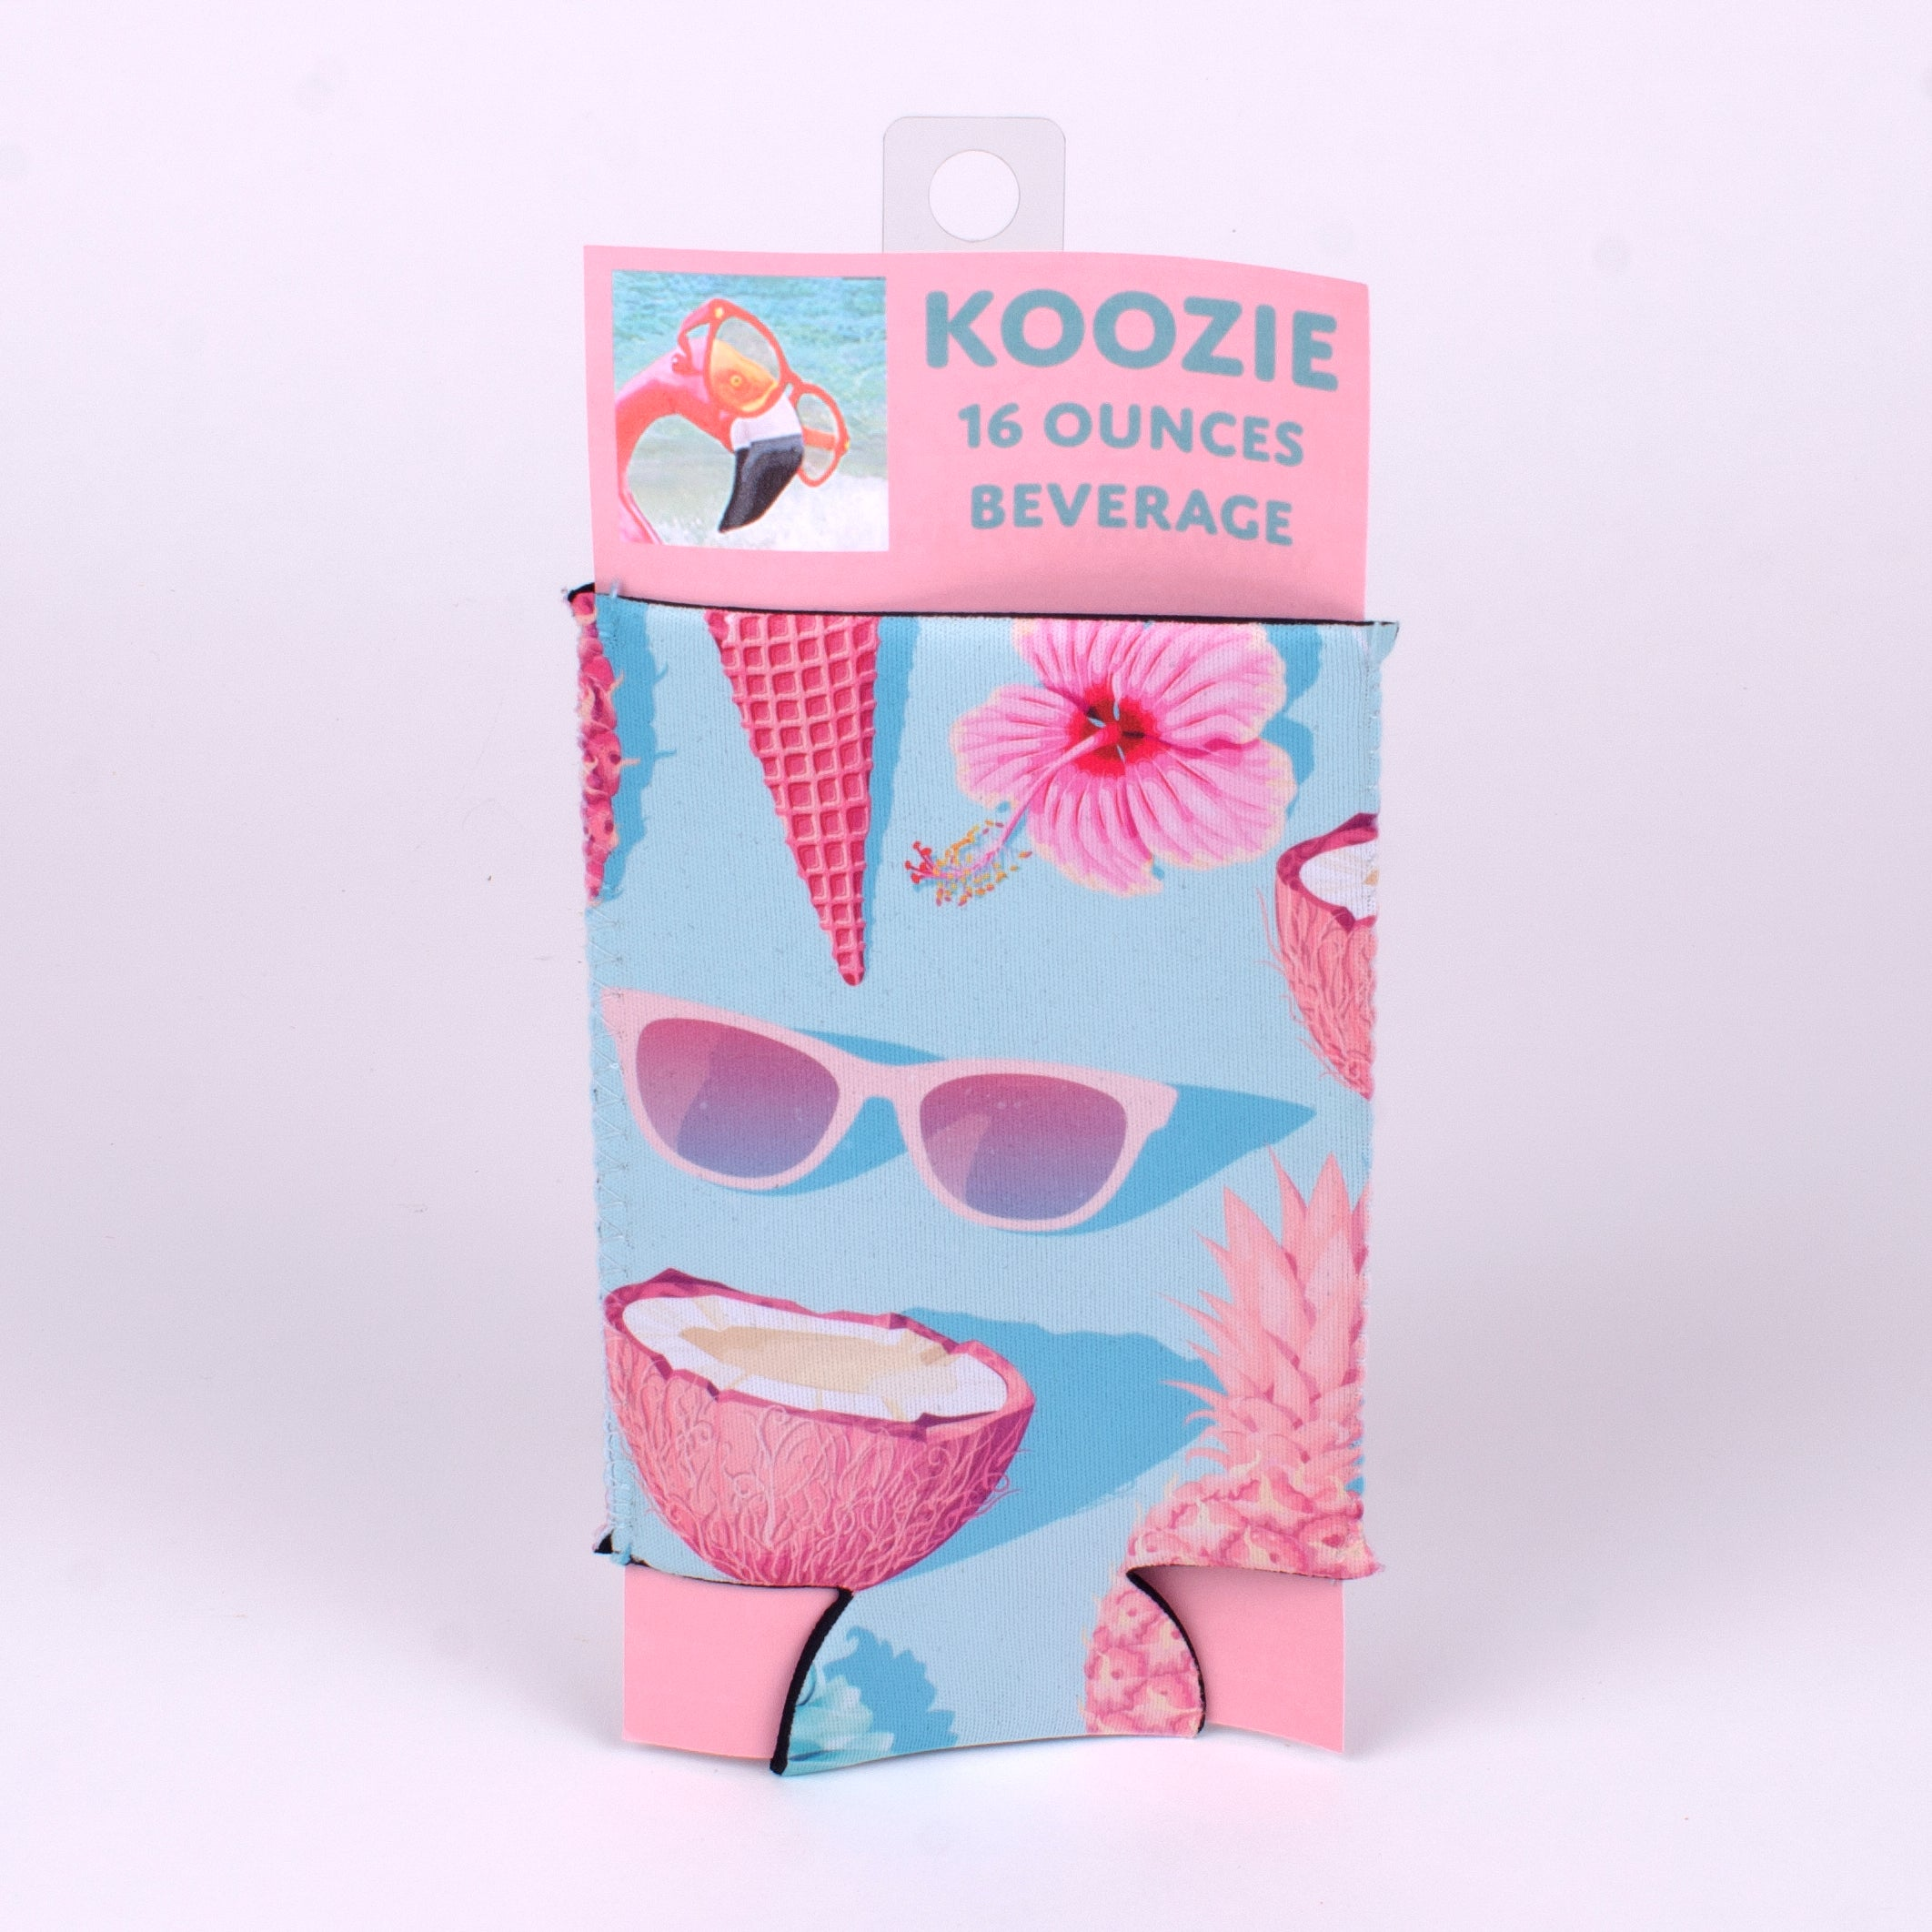 16 ounce Koozie (Image: Blue Pineapple Collage)